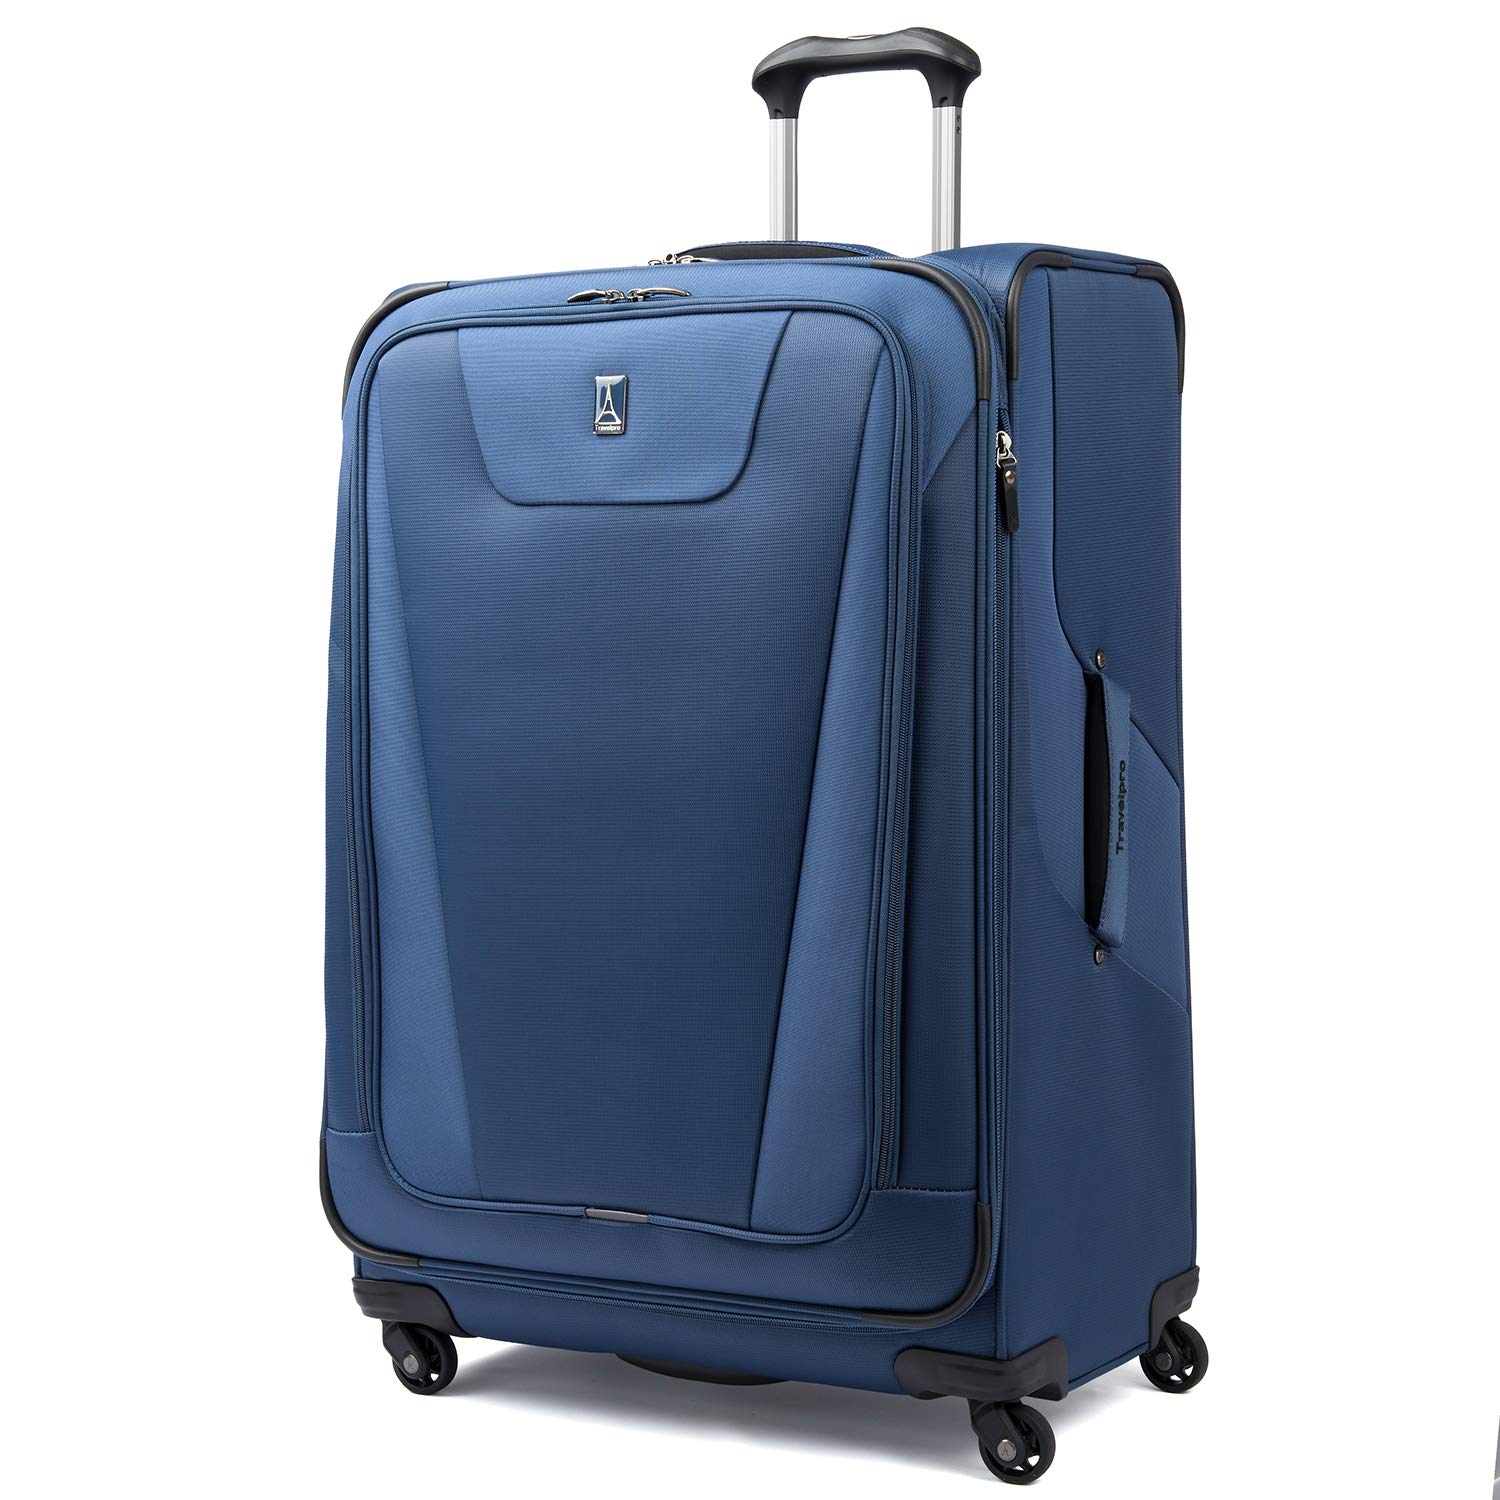 Travelpro Maxlite 4 Expandable 29 Inch Spinner Suitcase, Blue Travelpro International Inc. 401156902